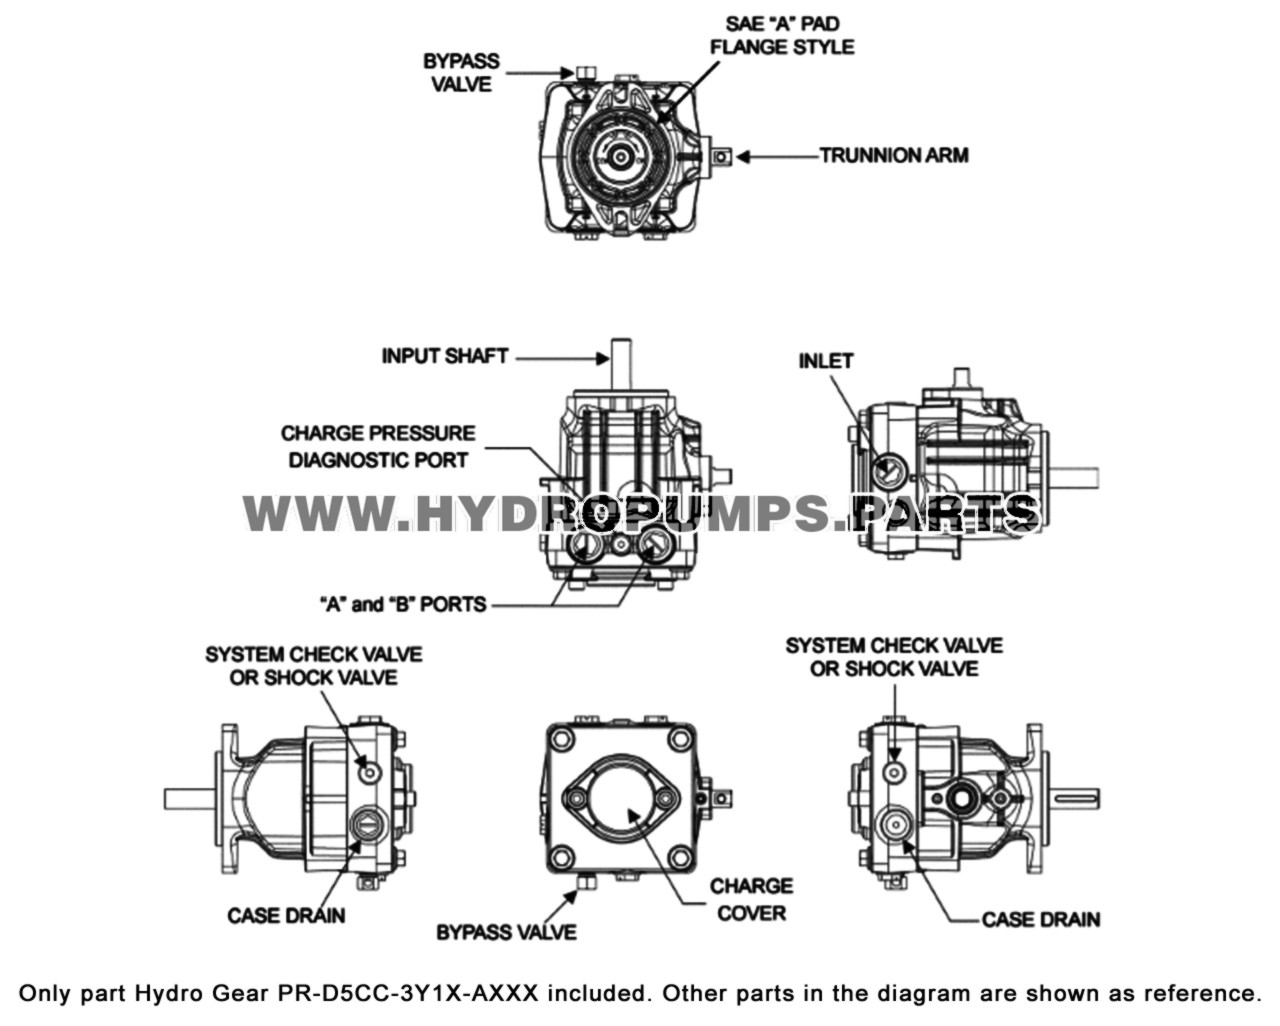 Parts lookup Hydro Gear PR-D5CC-3Y1X-AXXX PR Series Hydraulic Pump OEM diagram